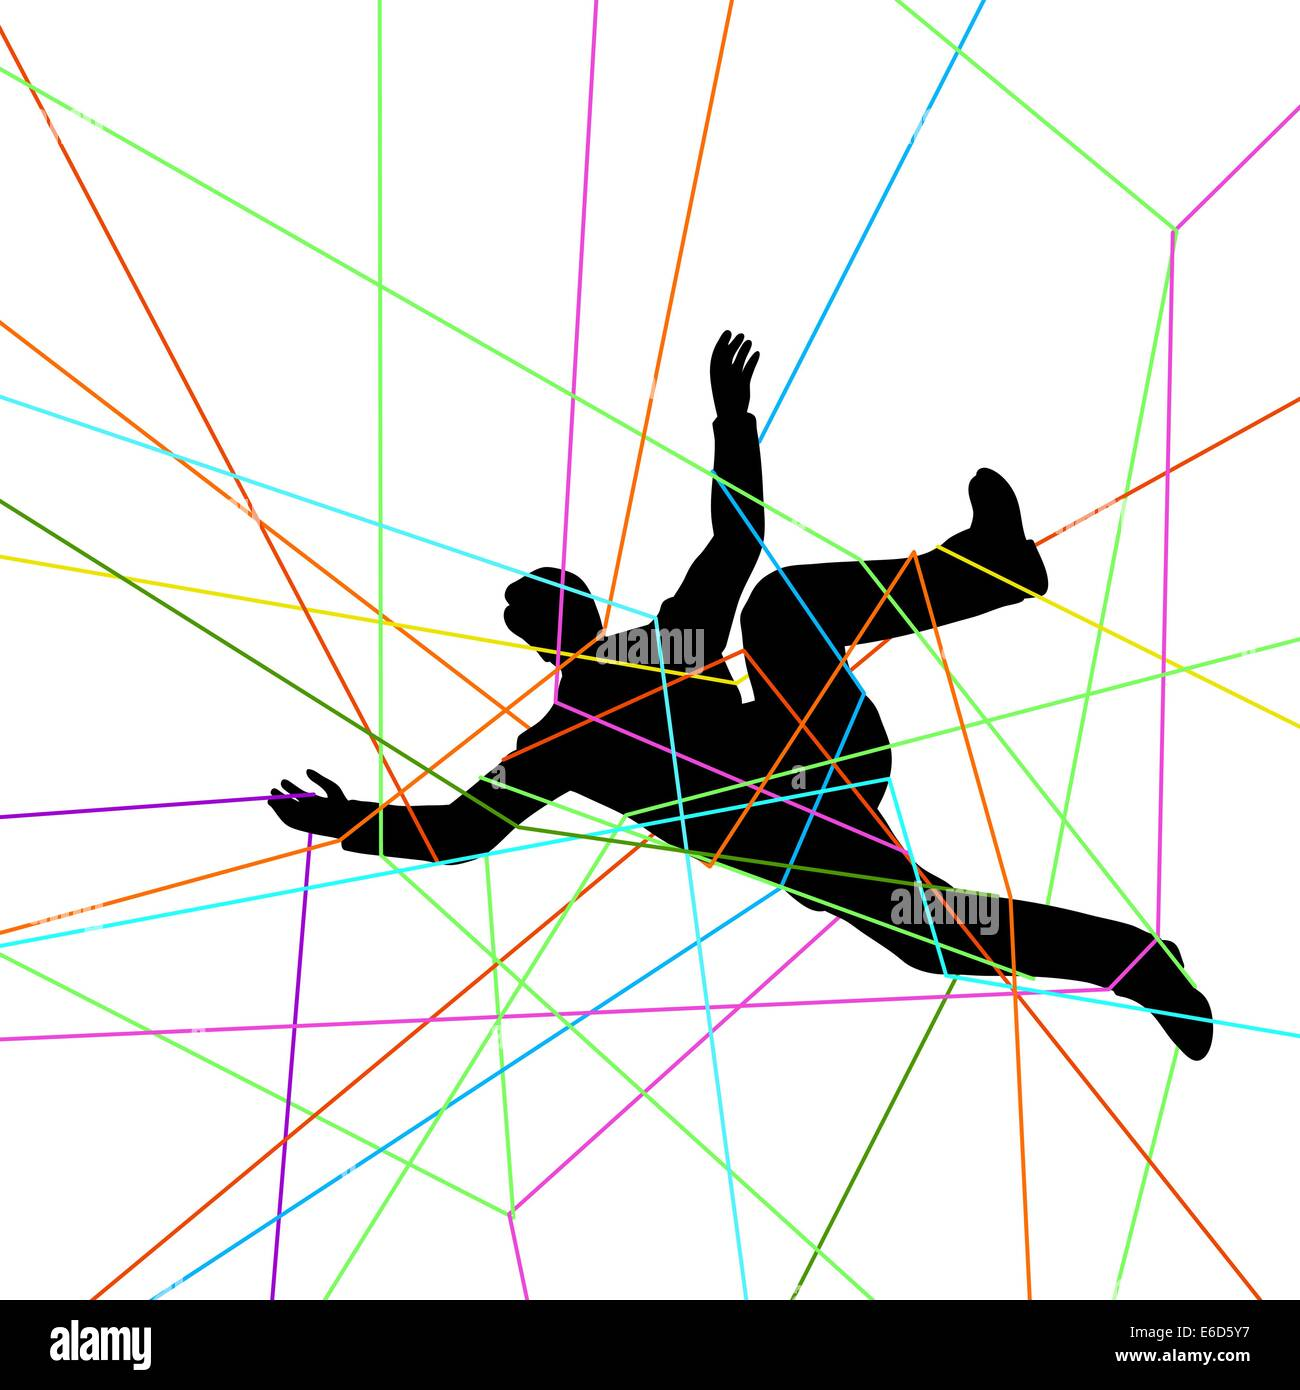 Editable vector illustration of a man entangled in colorful threads - Stock Vector